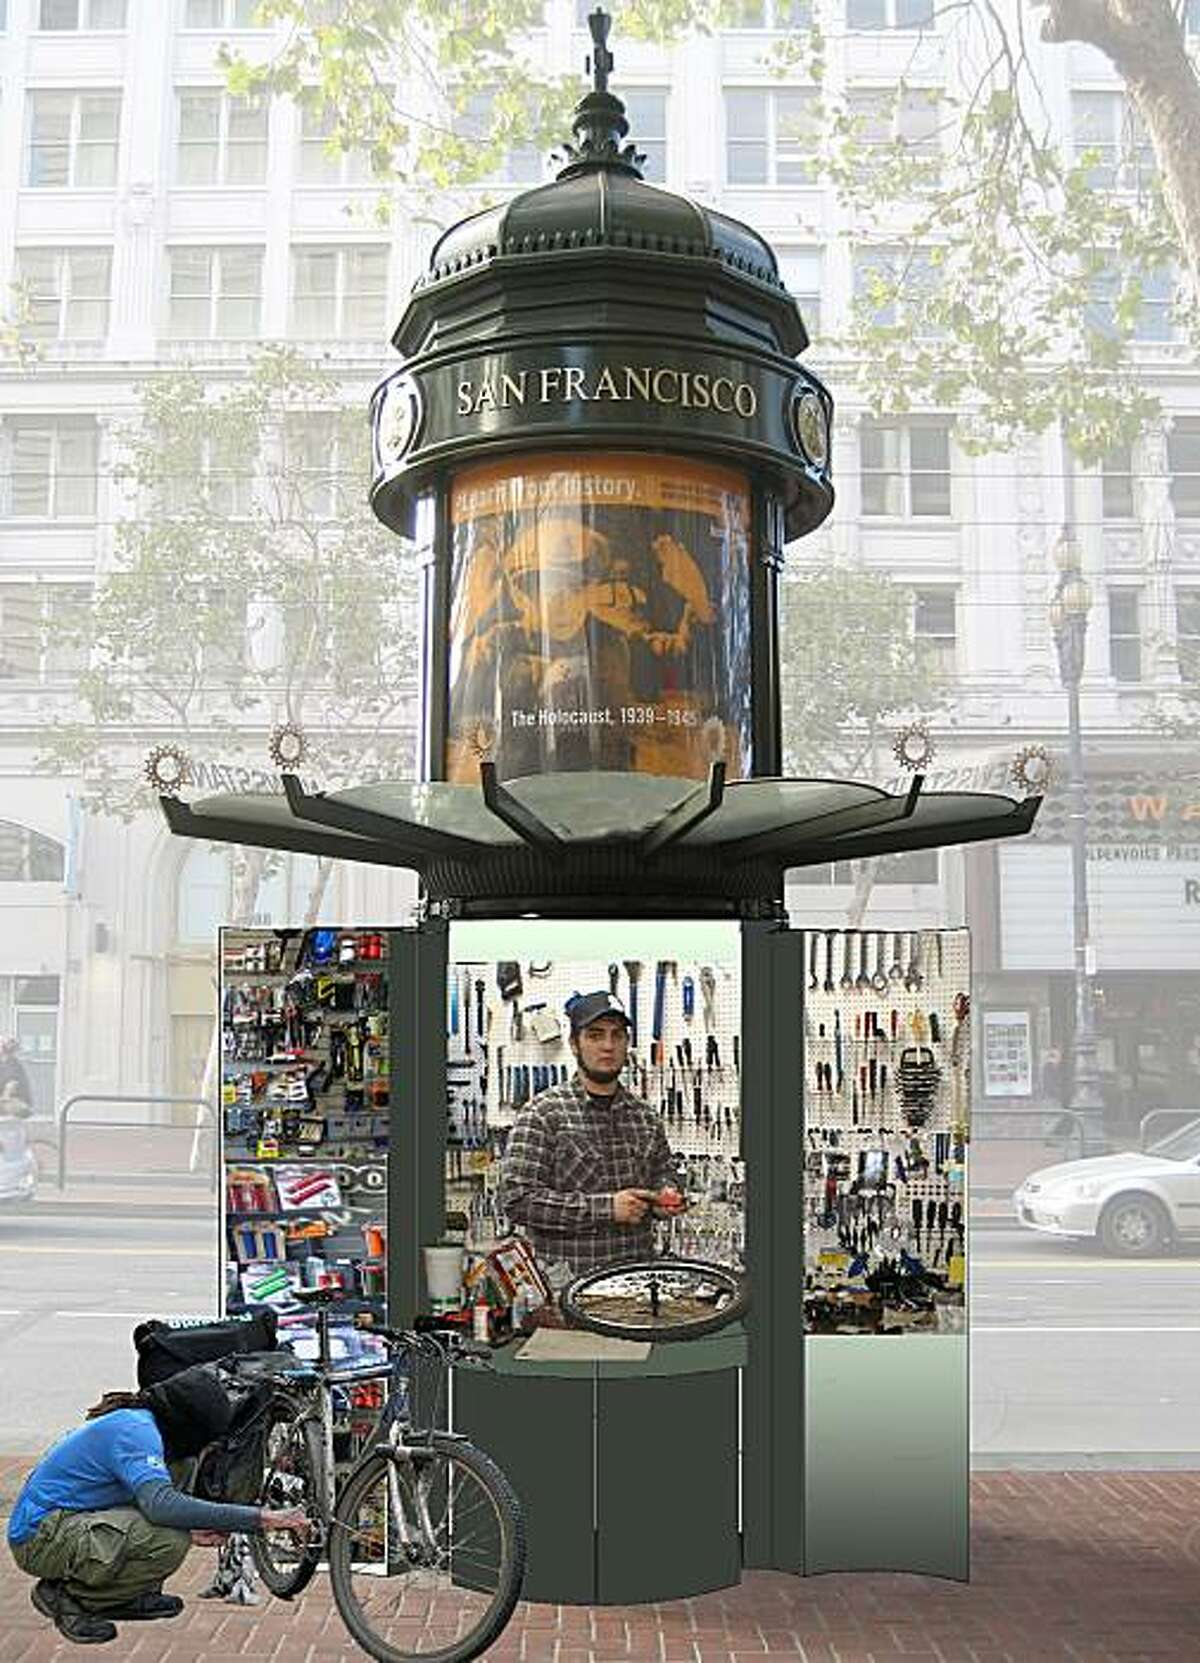 Design concepts for the reuse of news kiosks on Mid-Market Street include using them as